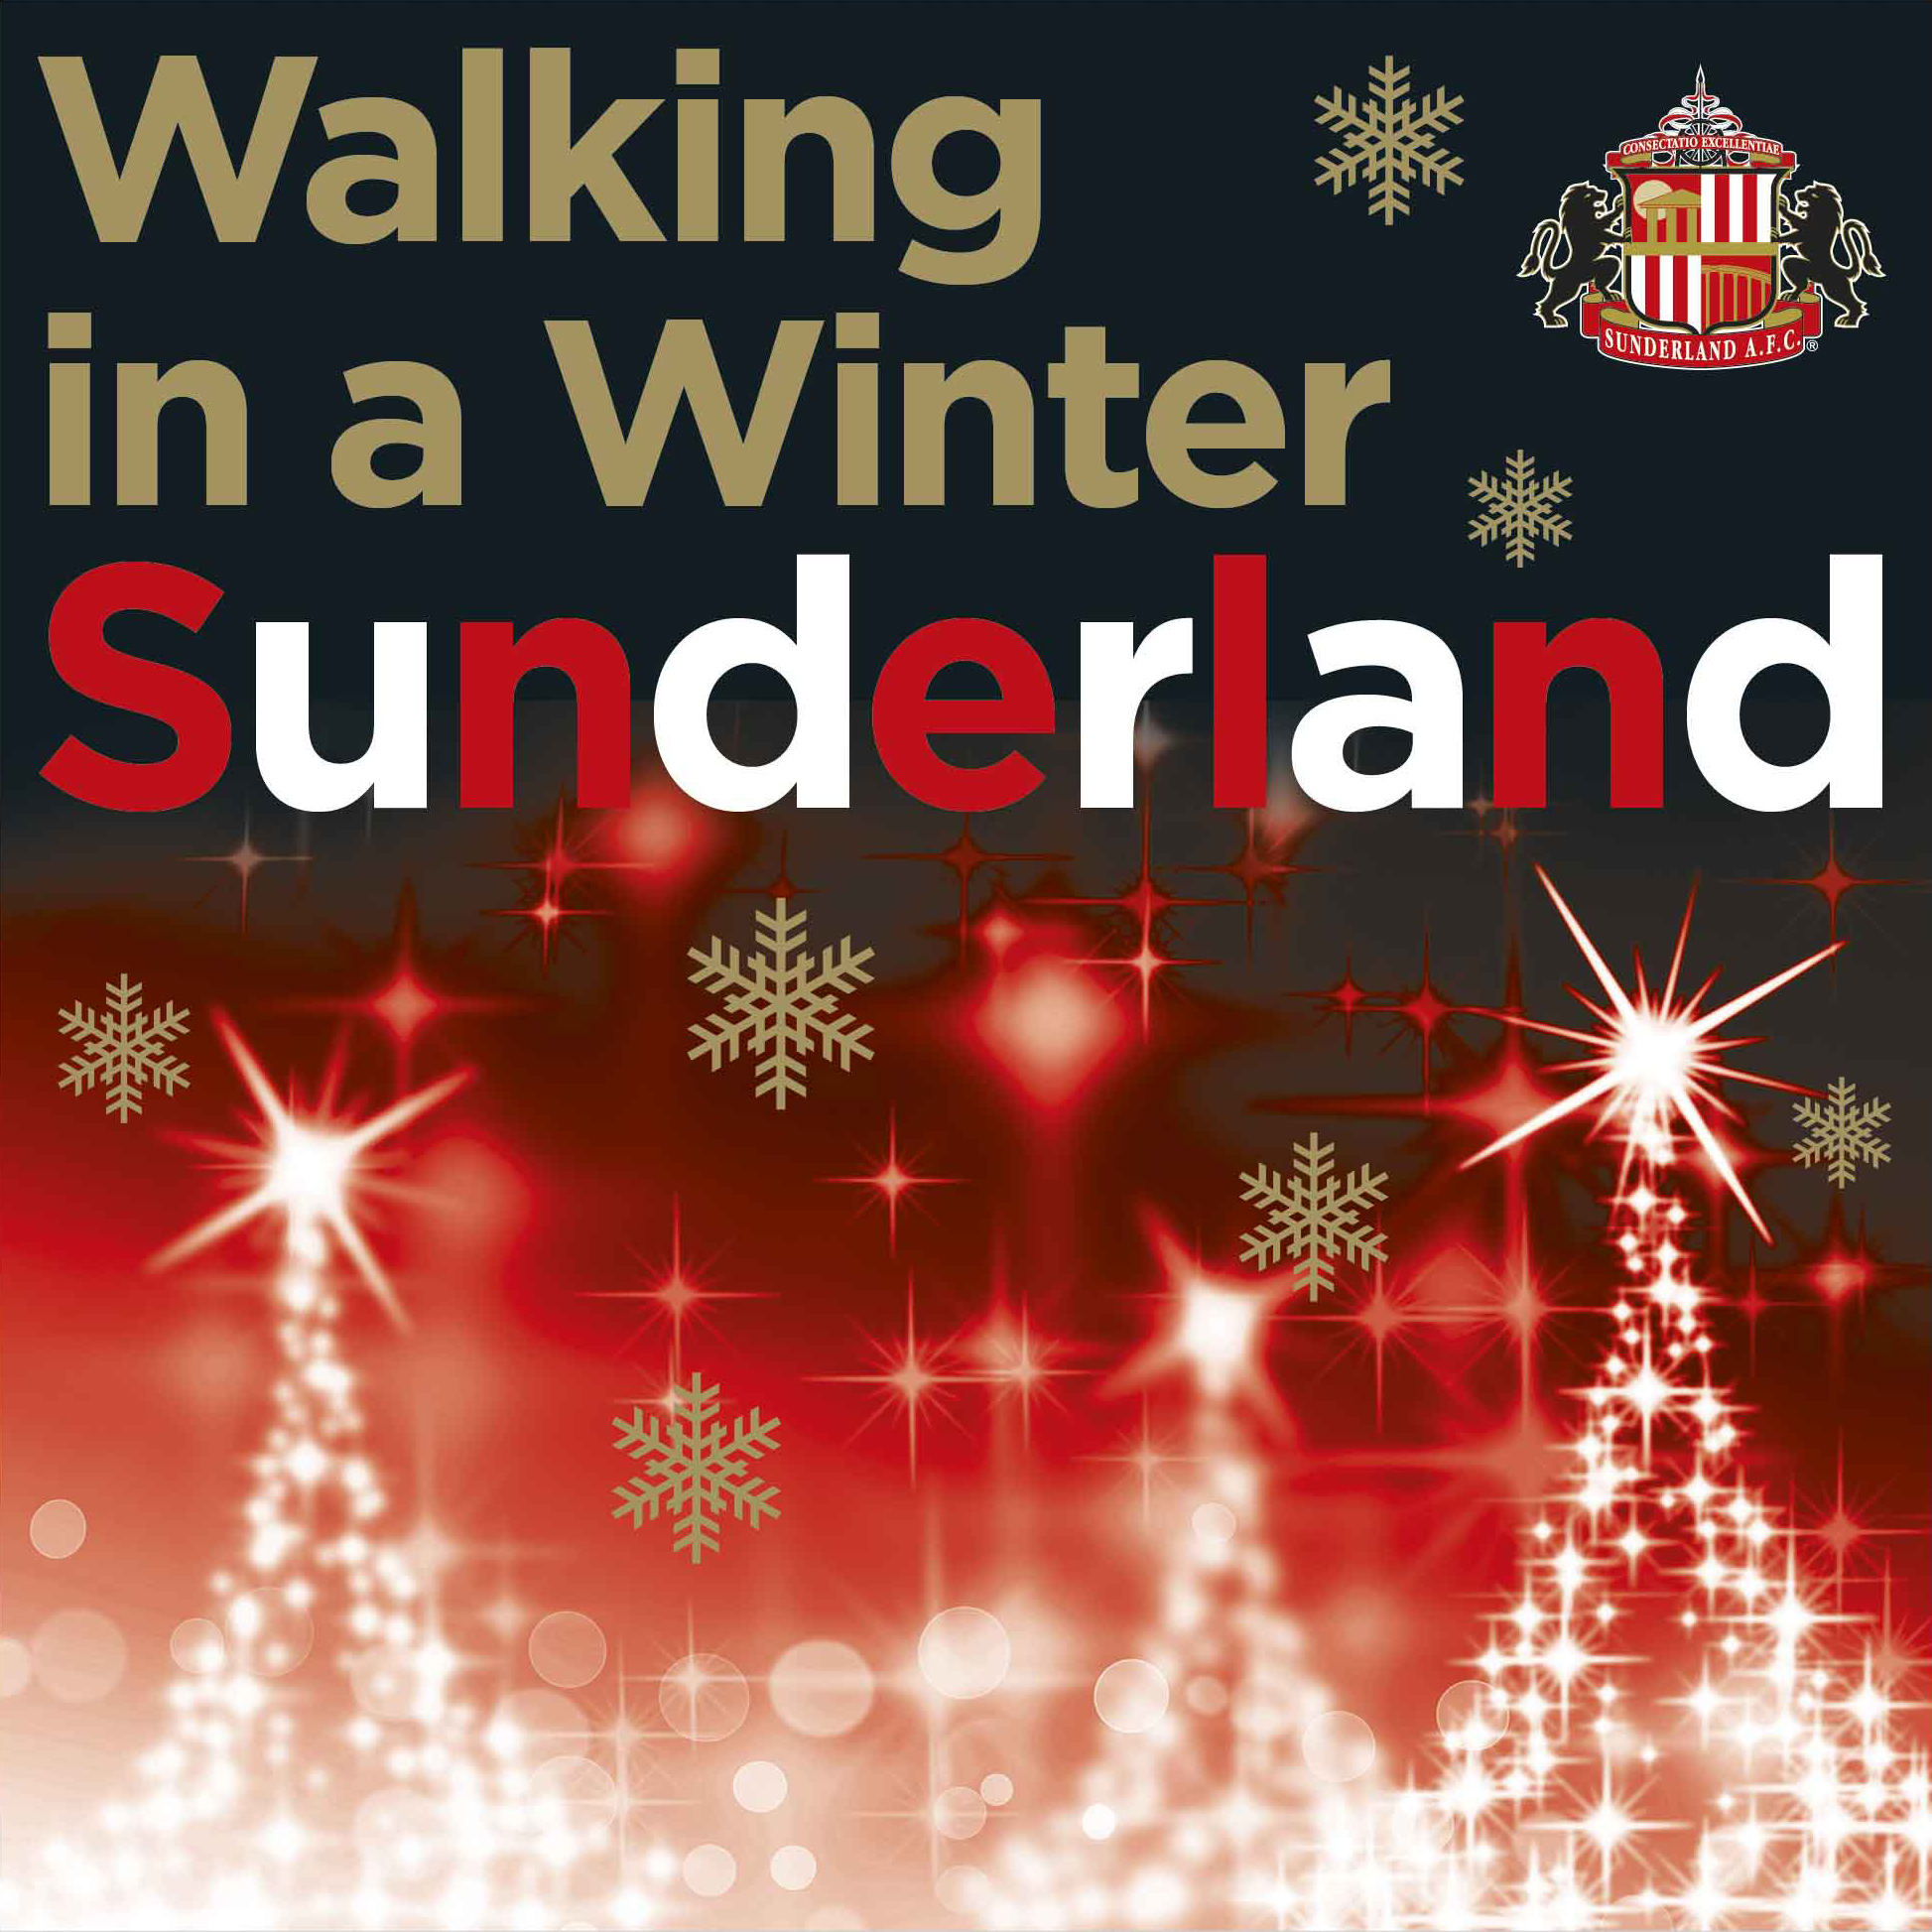 Sunderland Christmas Card